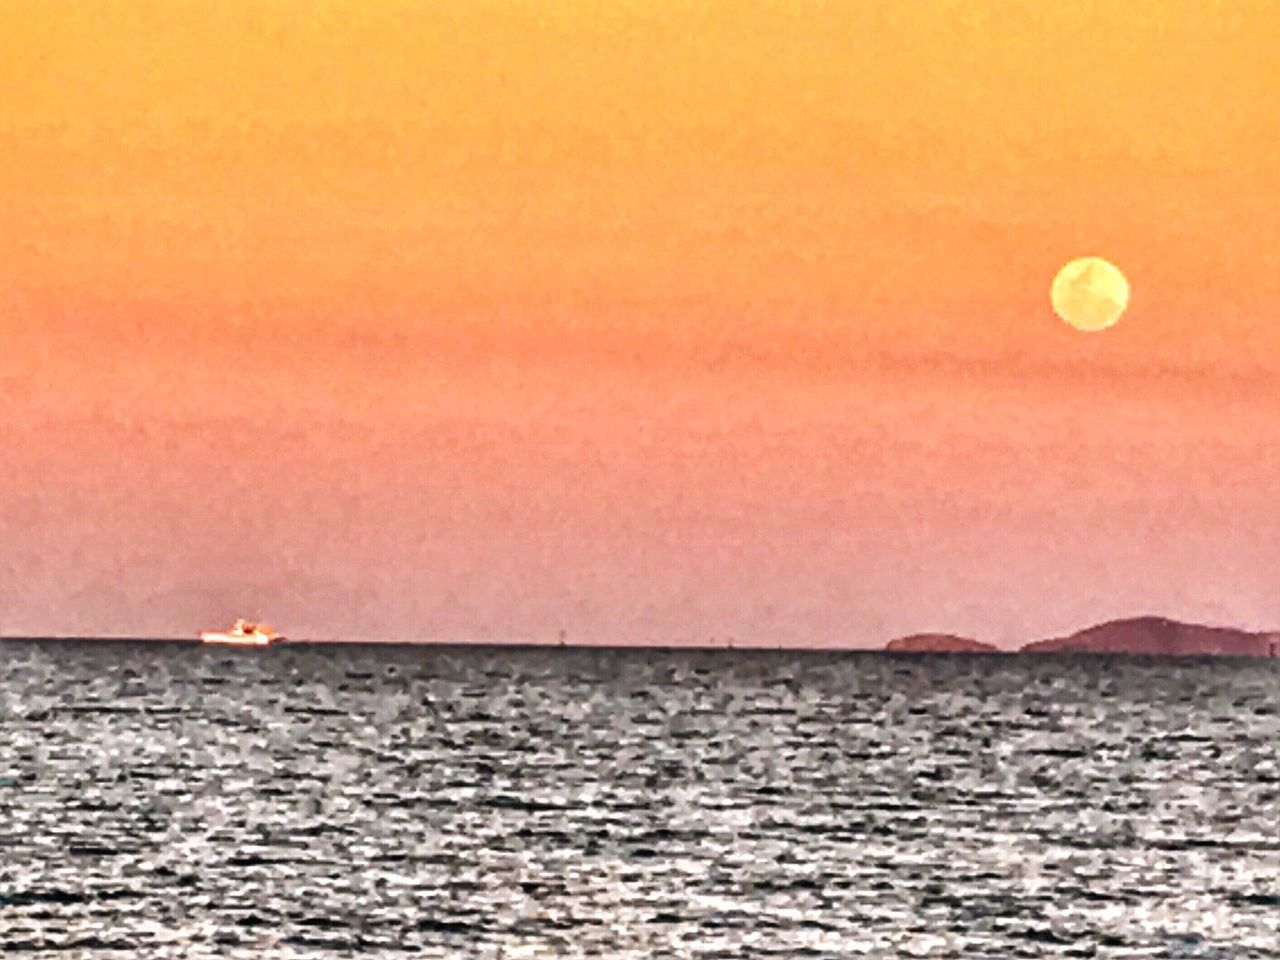 Tranquility Sunset Beauty In Nature Horizon Over Water Townsville, Queensland. Supermoon